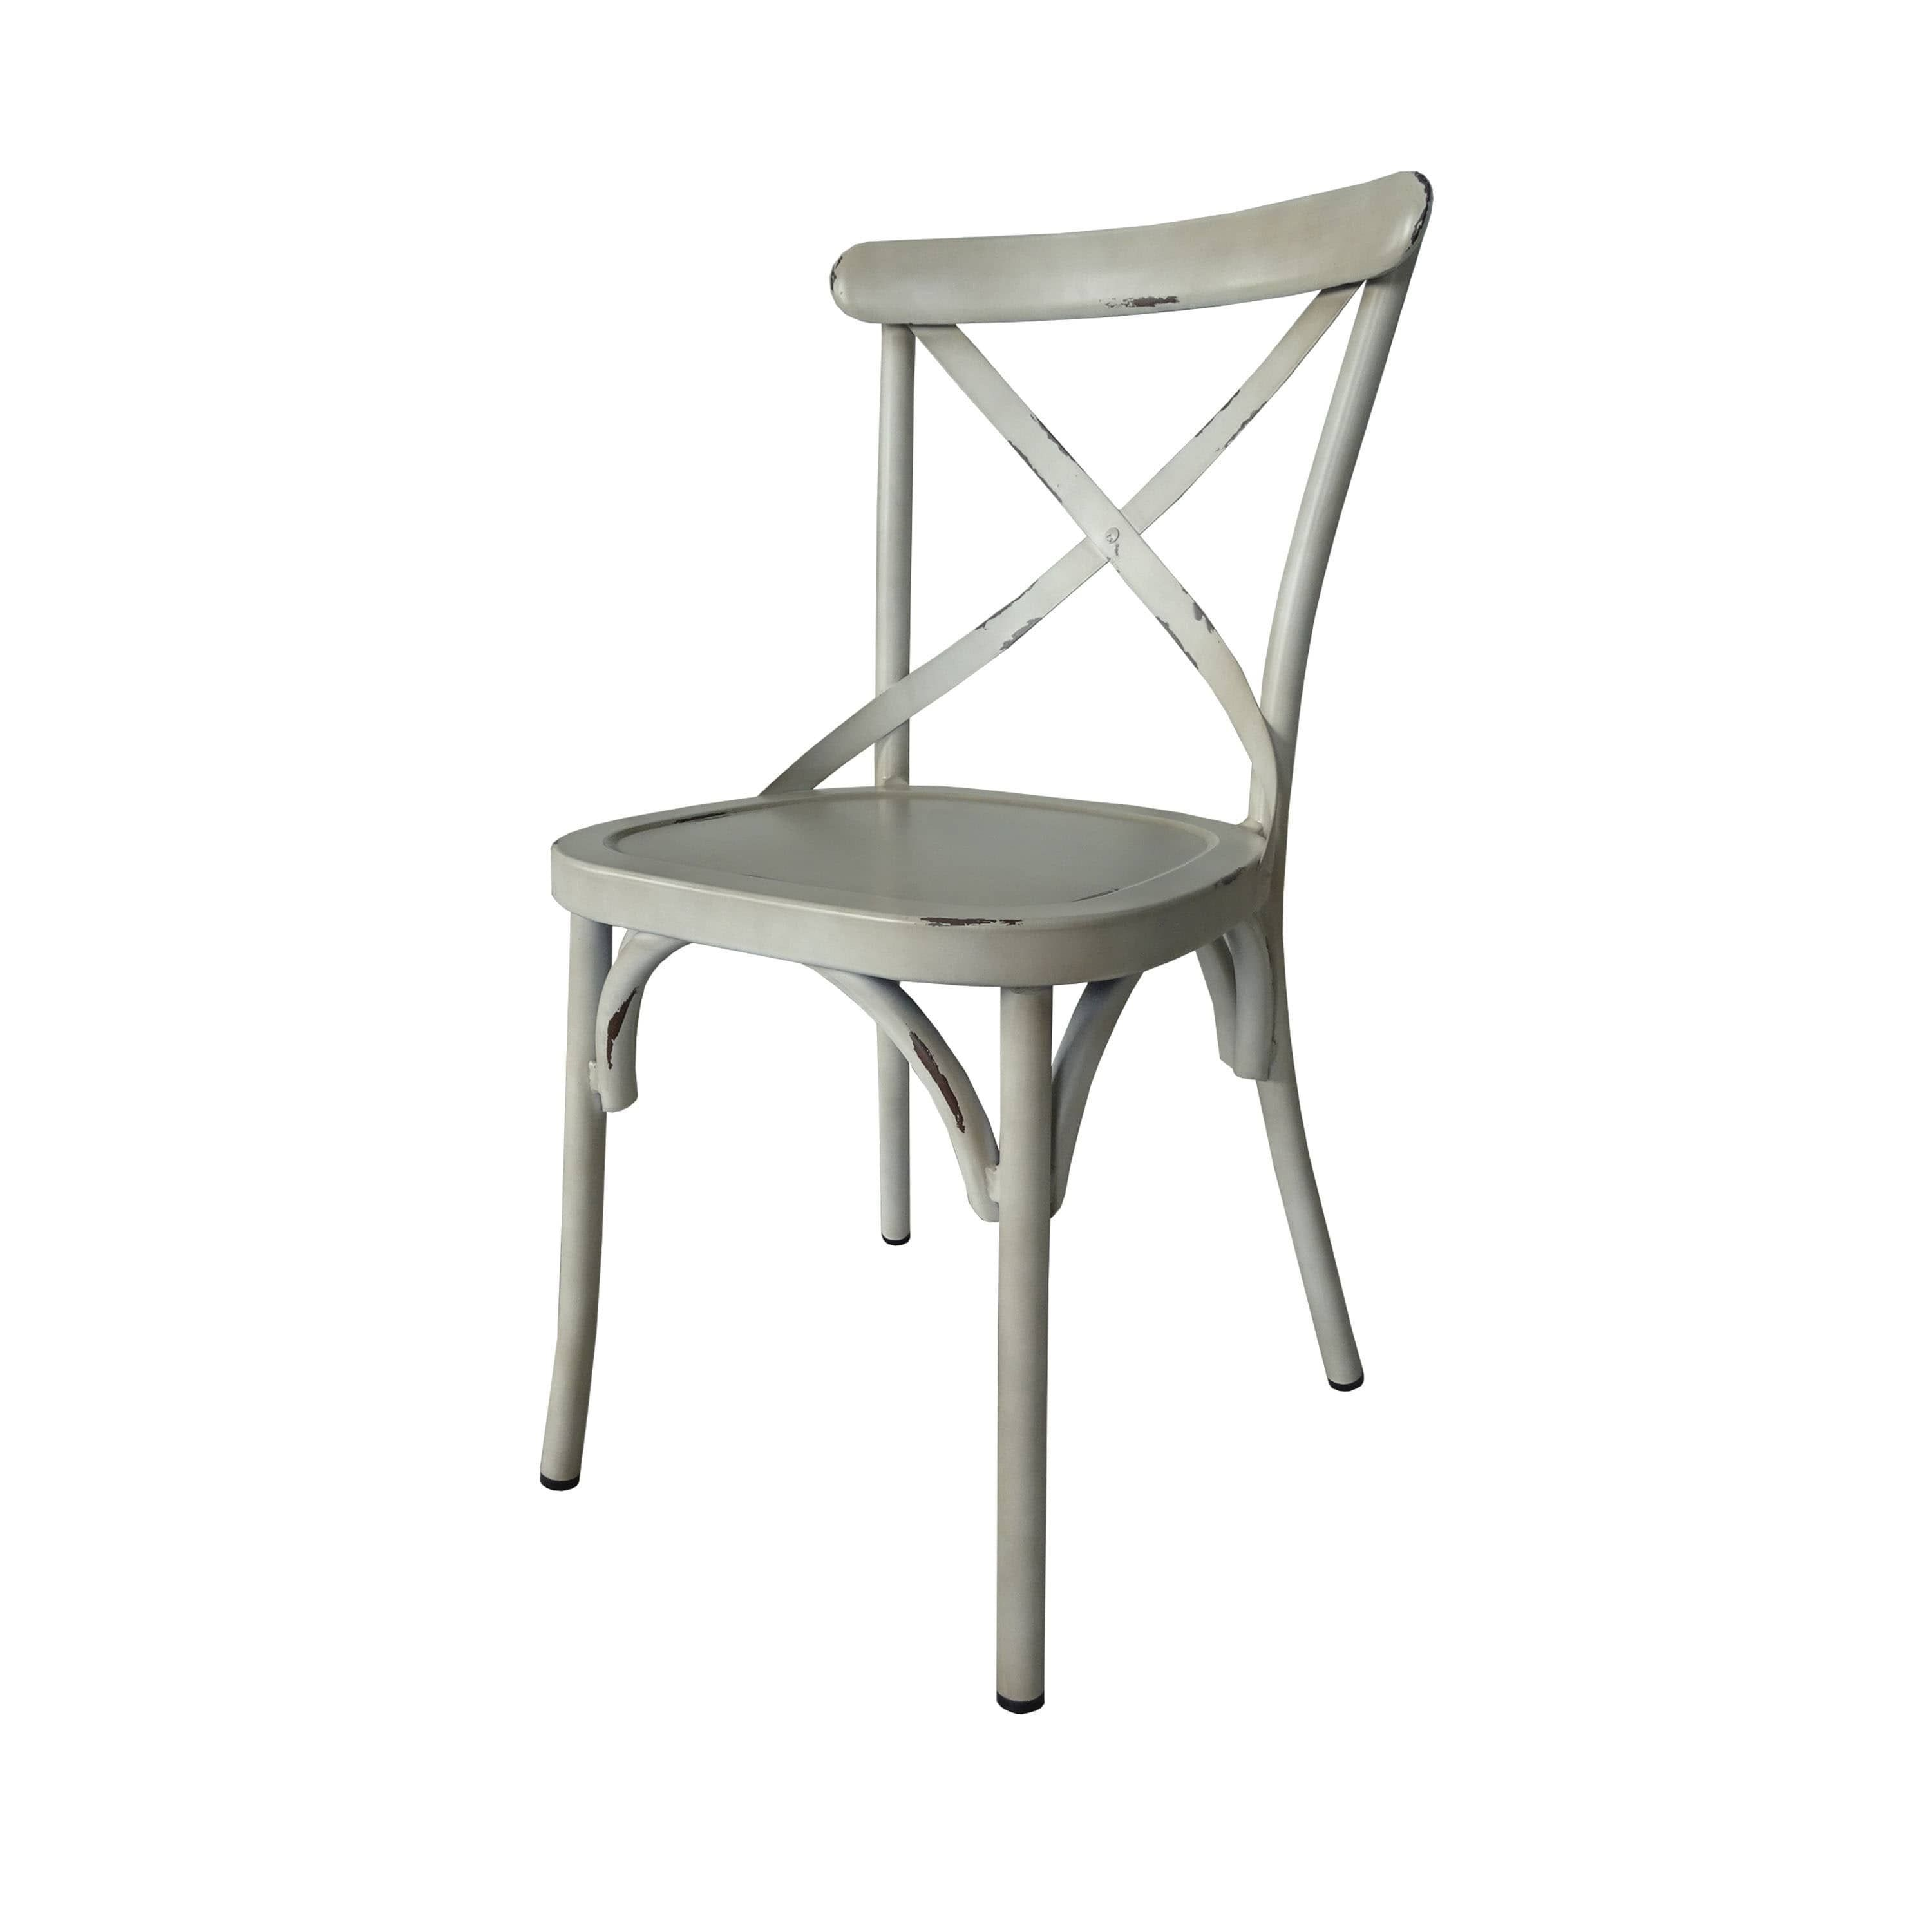 Villa Vintage White Aluminum Indoor Outdoor Rustic Dining Chair